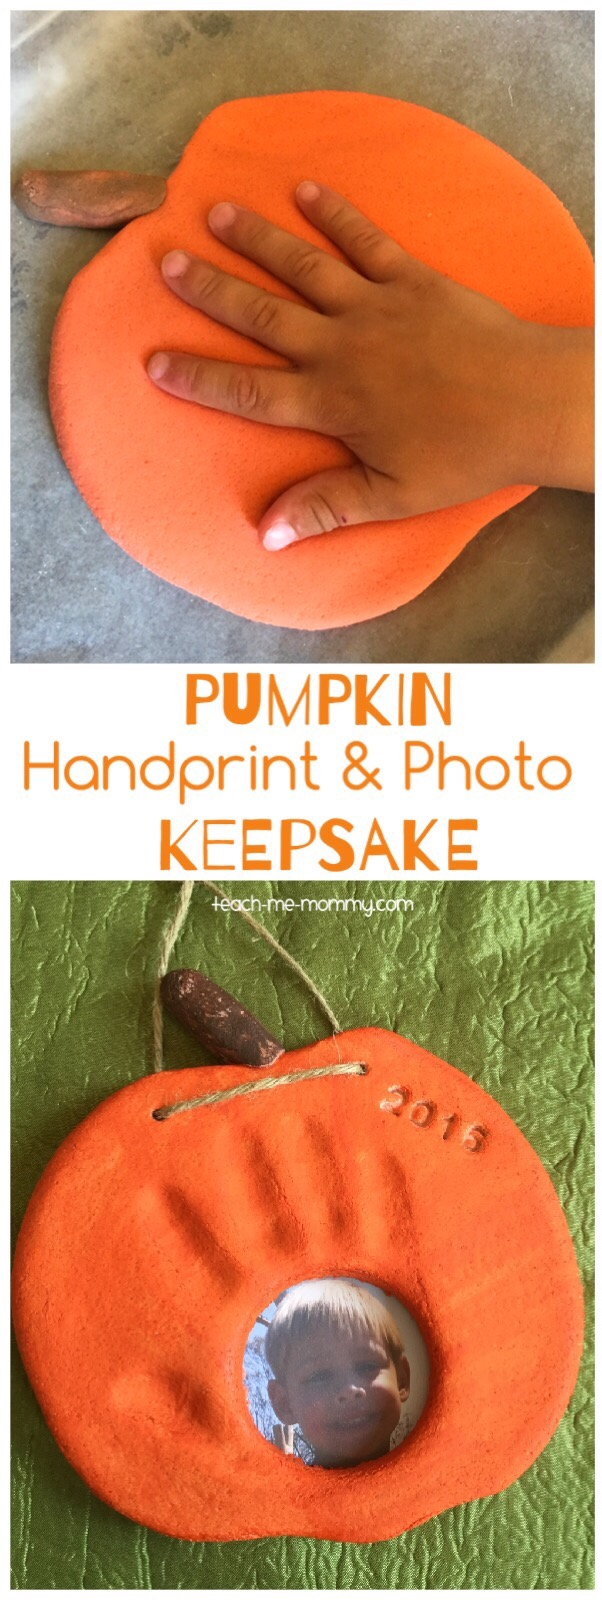 pumpkin keepsake